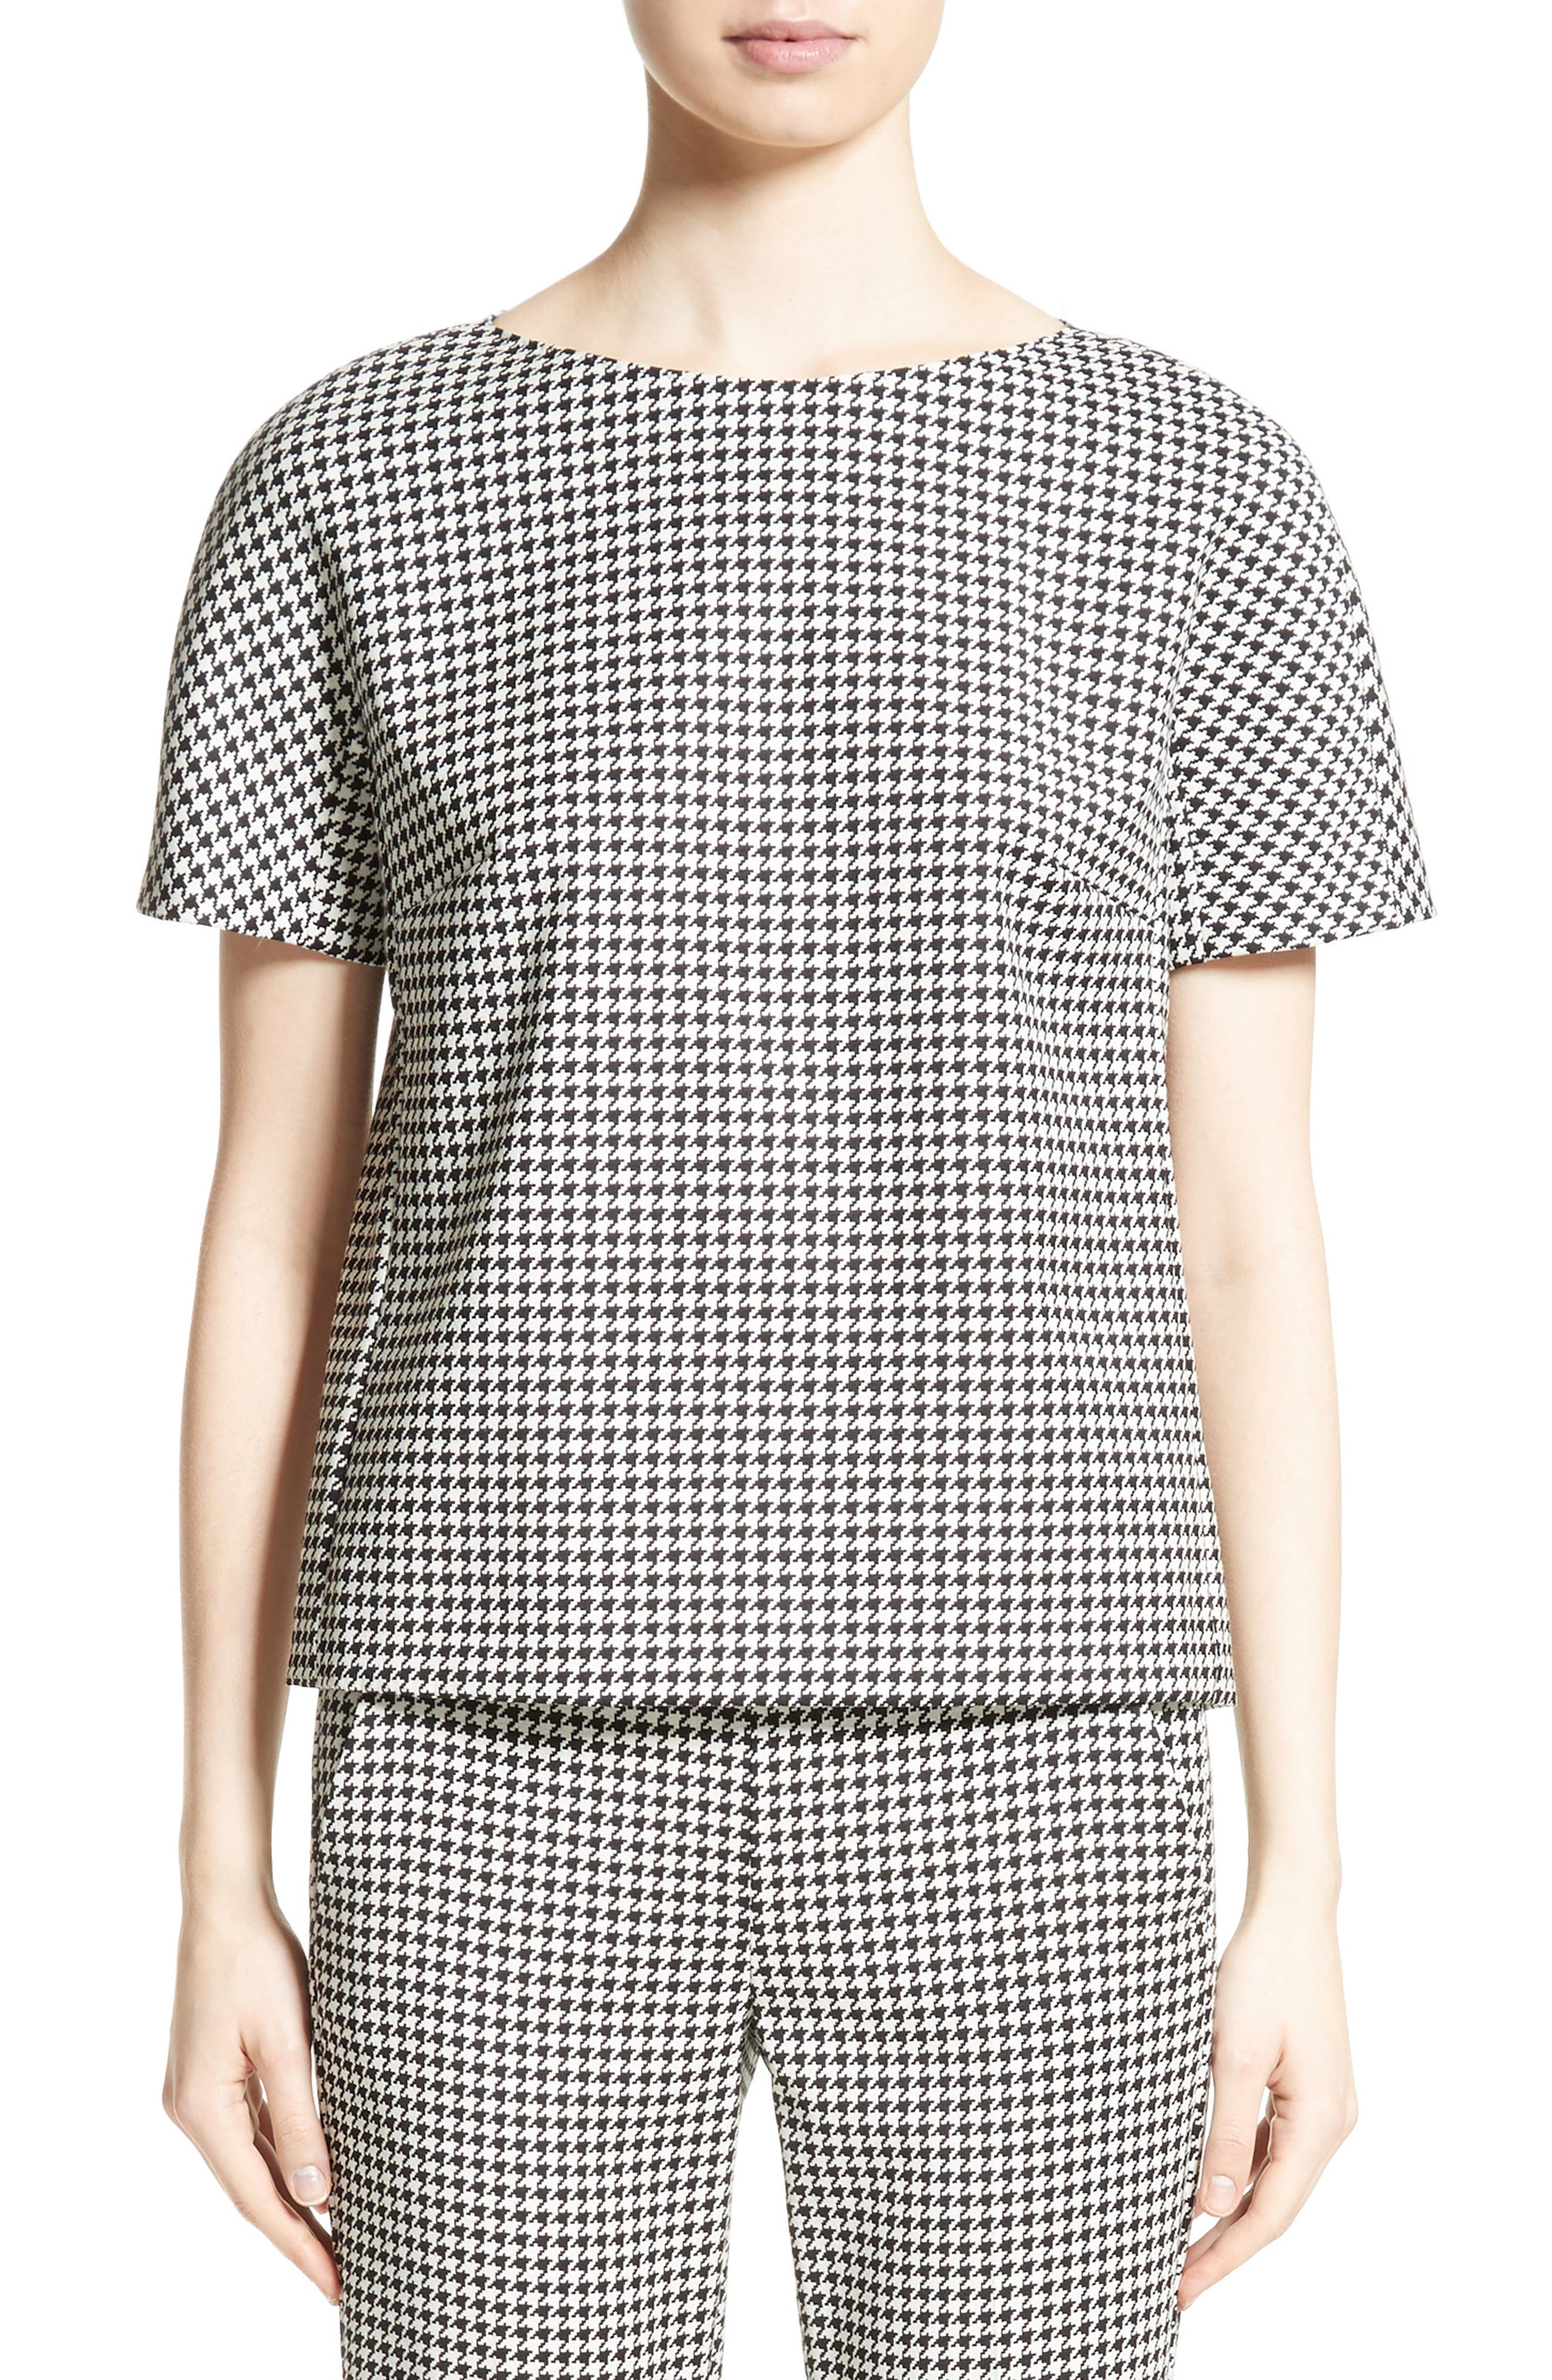 Main Image - Max Mara Ares Wool Blend Houndstooth Top